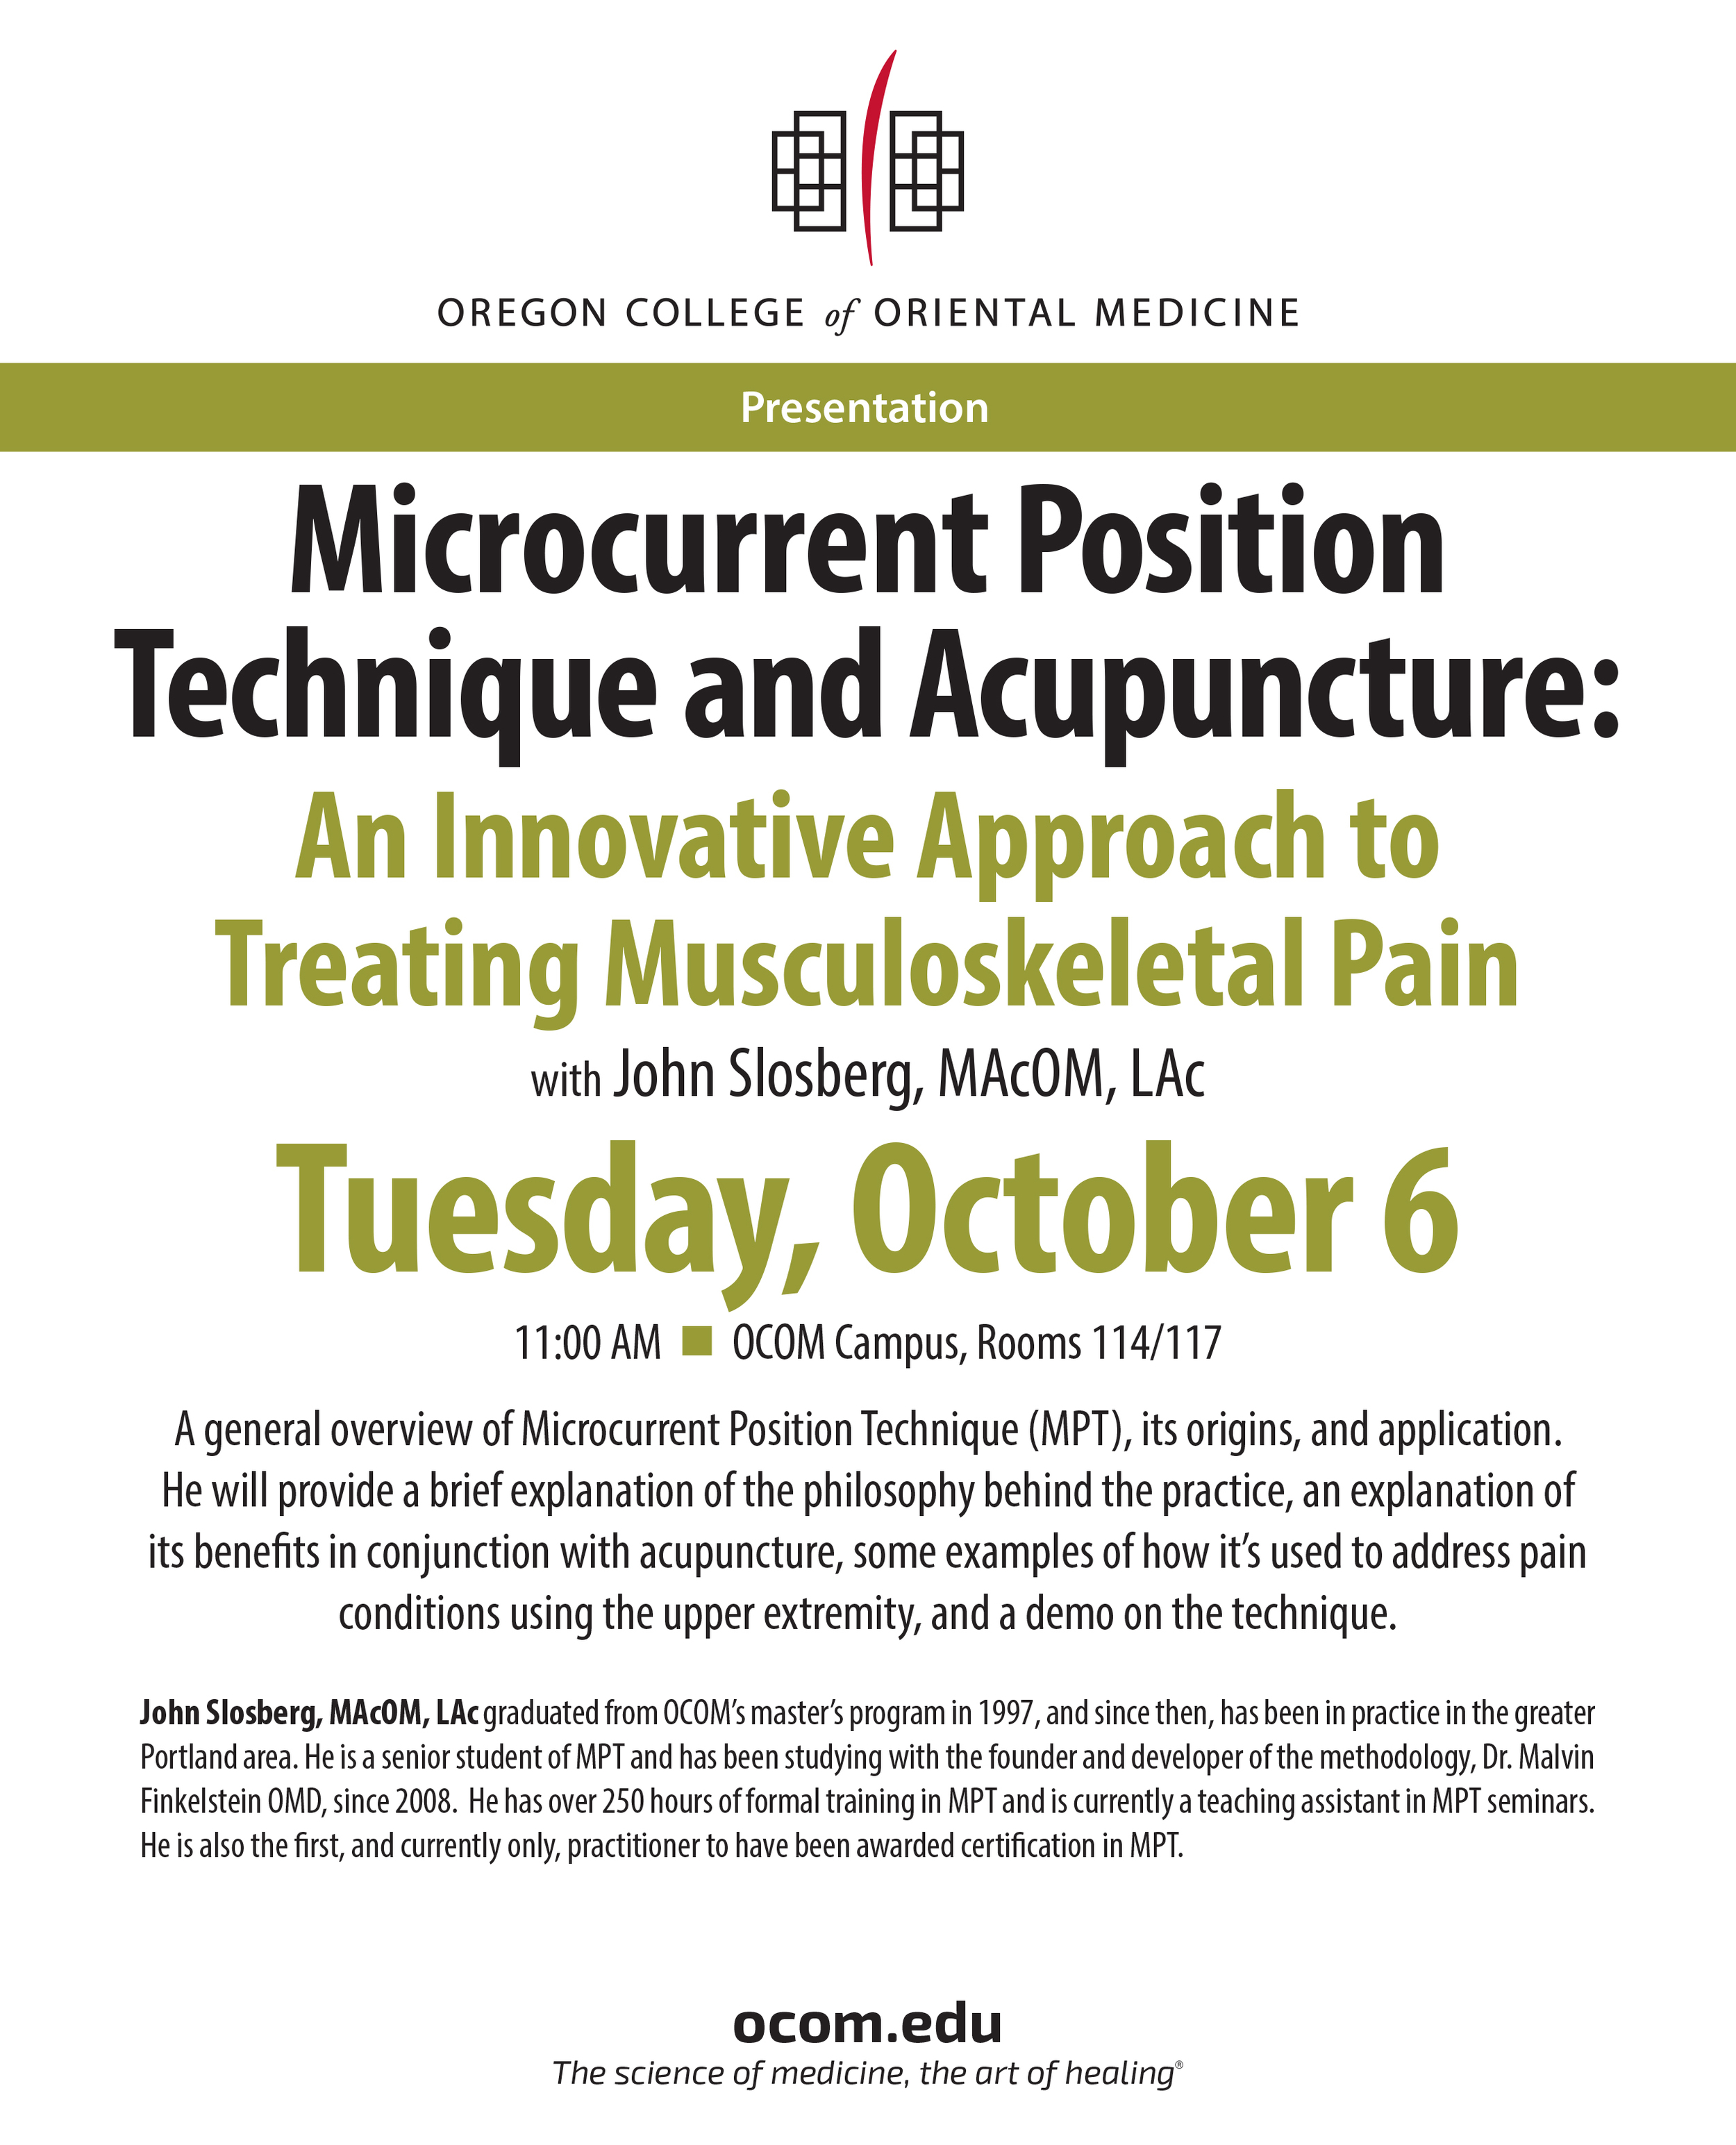 A poster for the lecture John Slosberg presented at the Oregon College of Oriental Medicine in Portland, Oregon  in 2015.